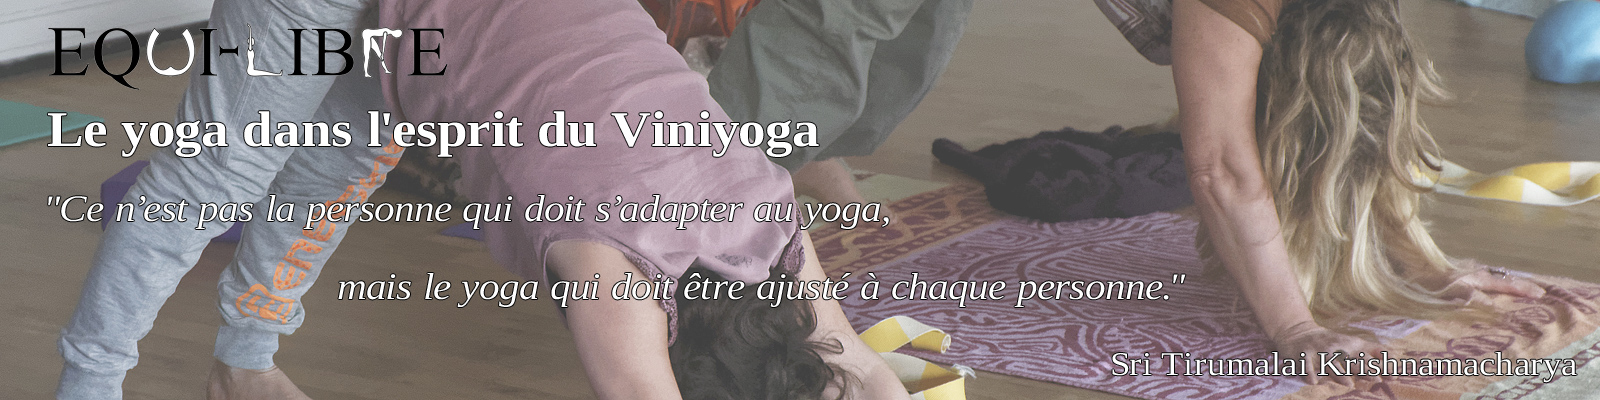 Association de yoga Equi-Libre